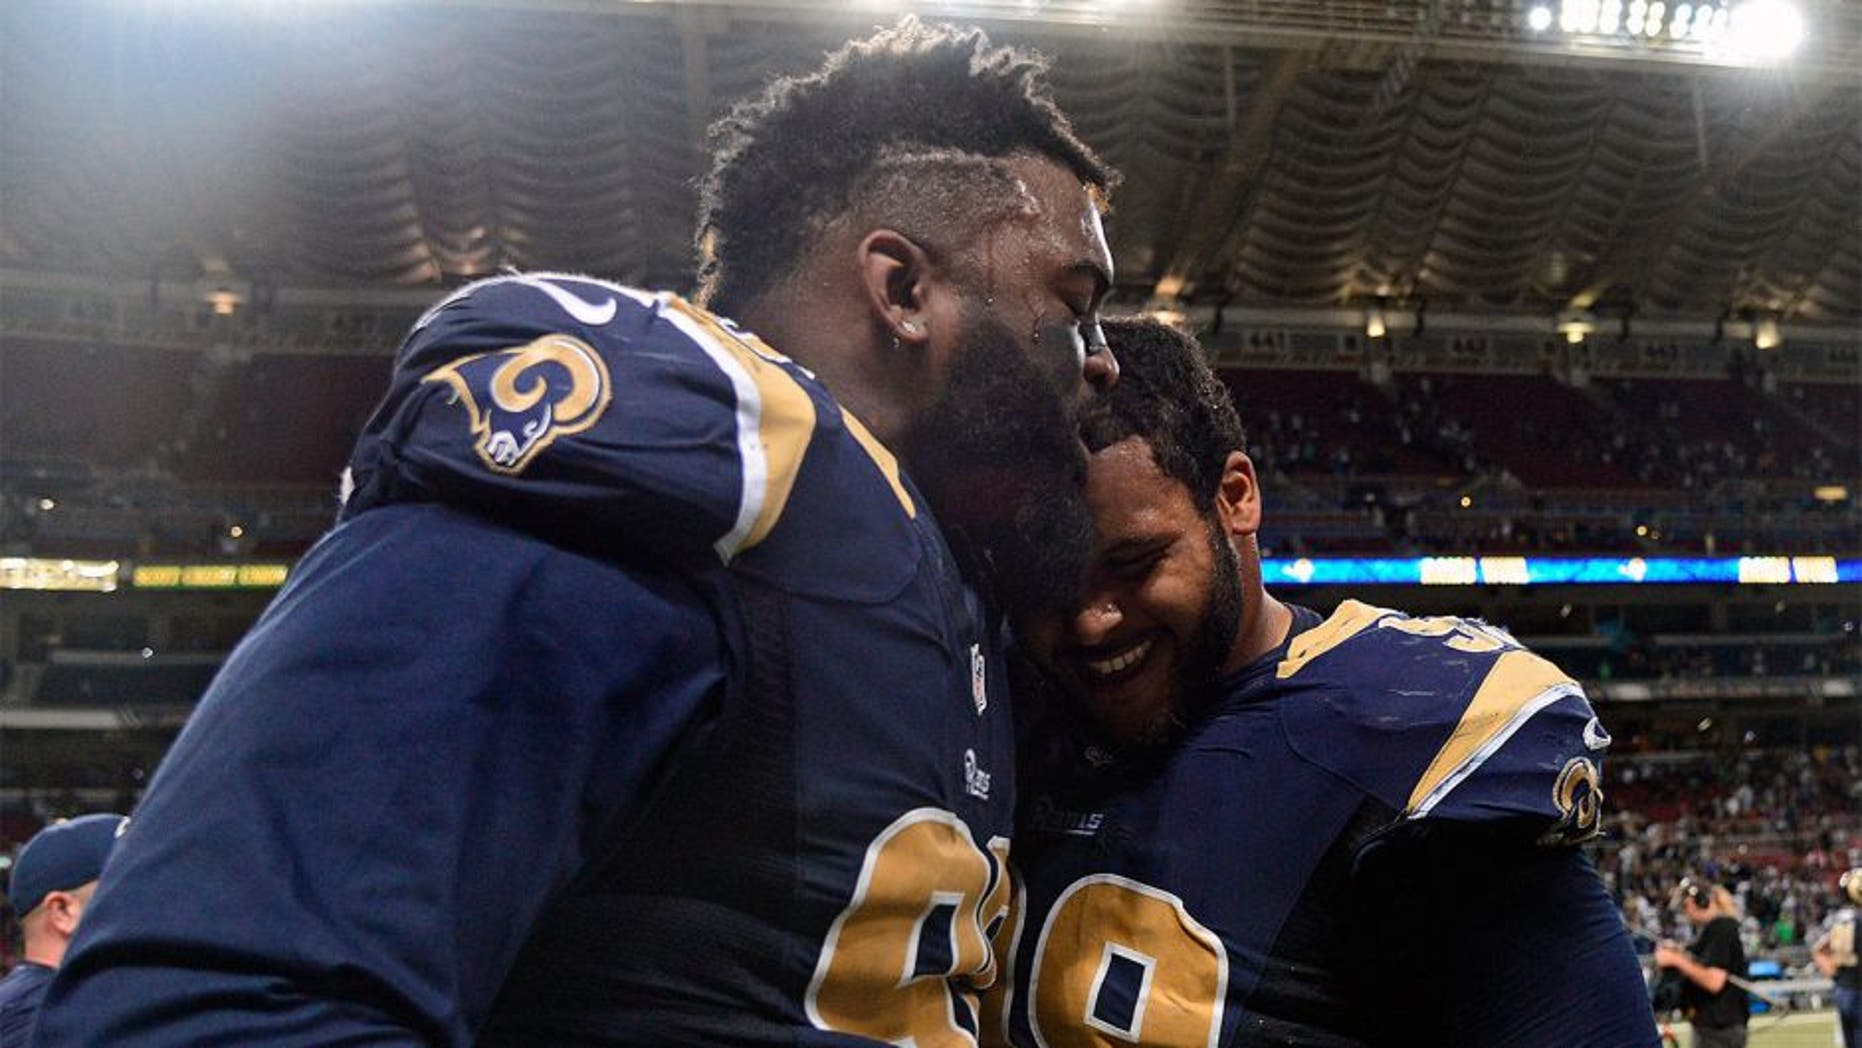 Sep 13, 2015; St. Louis, MO, USA; St. Louis Rams defensive tackle Michael Brockers (90) celebrates with defensive tackle Aaron Donald (99) after defeating the Seattle Seahawks 34-31 in overtime at the Edward Jones Dome. Mandatory Credit: Jeff Curry-USA TODAY Sports